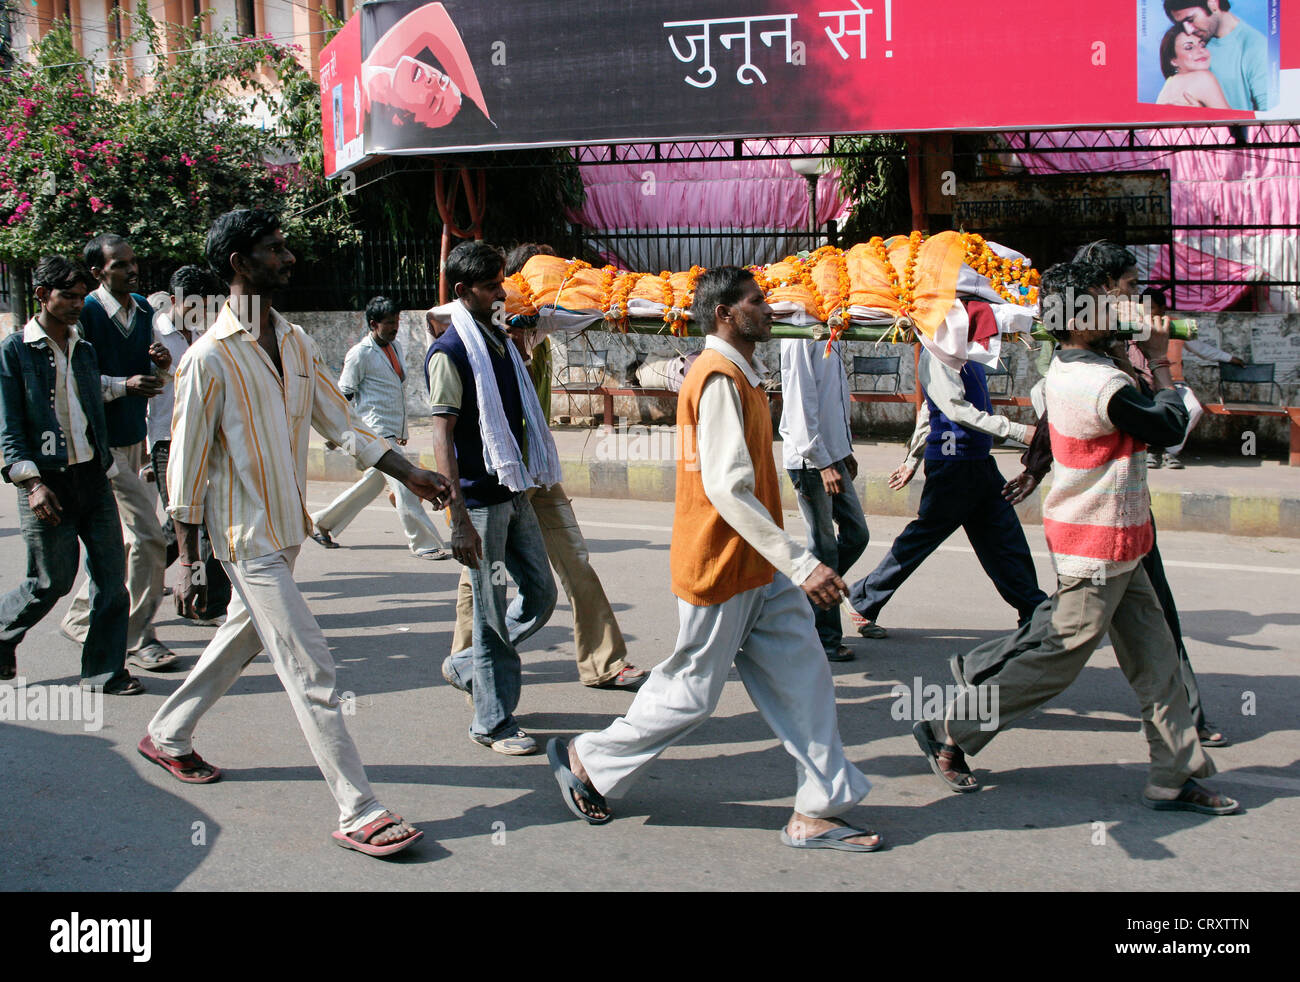 men carrying a wraped dead person to a funeral, Lucknow, Uttar Pradesh, India - Stock Image